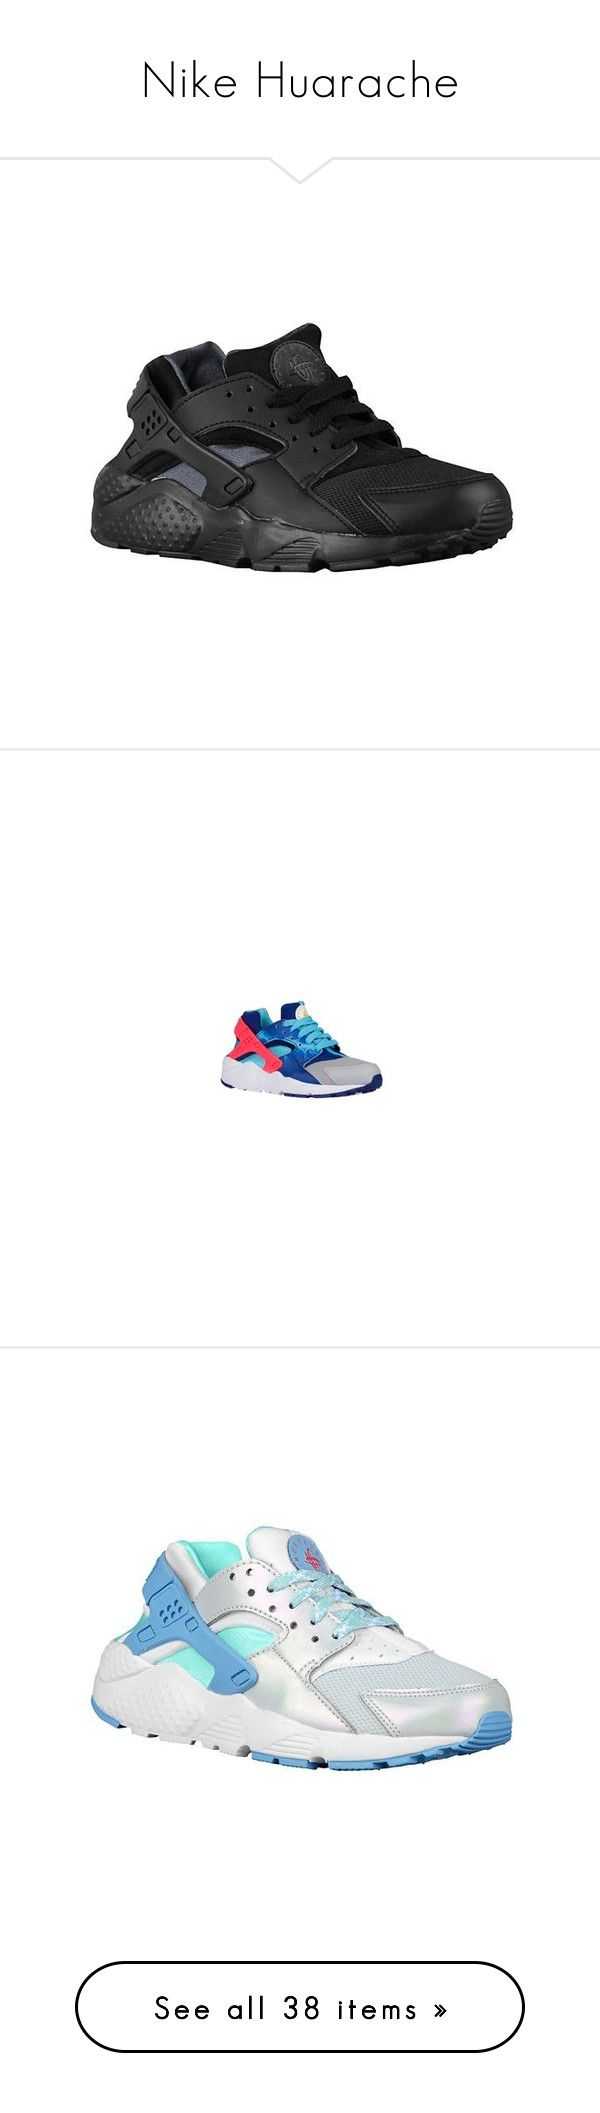 """""""Nike Huarache"""" by aniahrhichkhidd ❤ liked on Polyvore featuring sneakers, shoes, huarache, men's fashion, men's shoes, mens shoes, nike mens shoes, athletic shoes, leather athletic shoes and nike athletic shoes"""